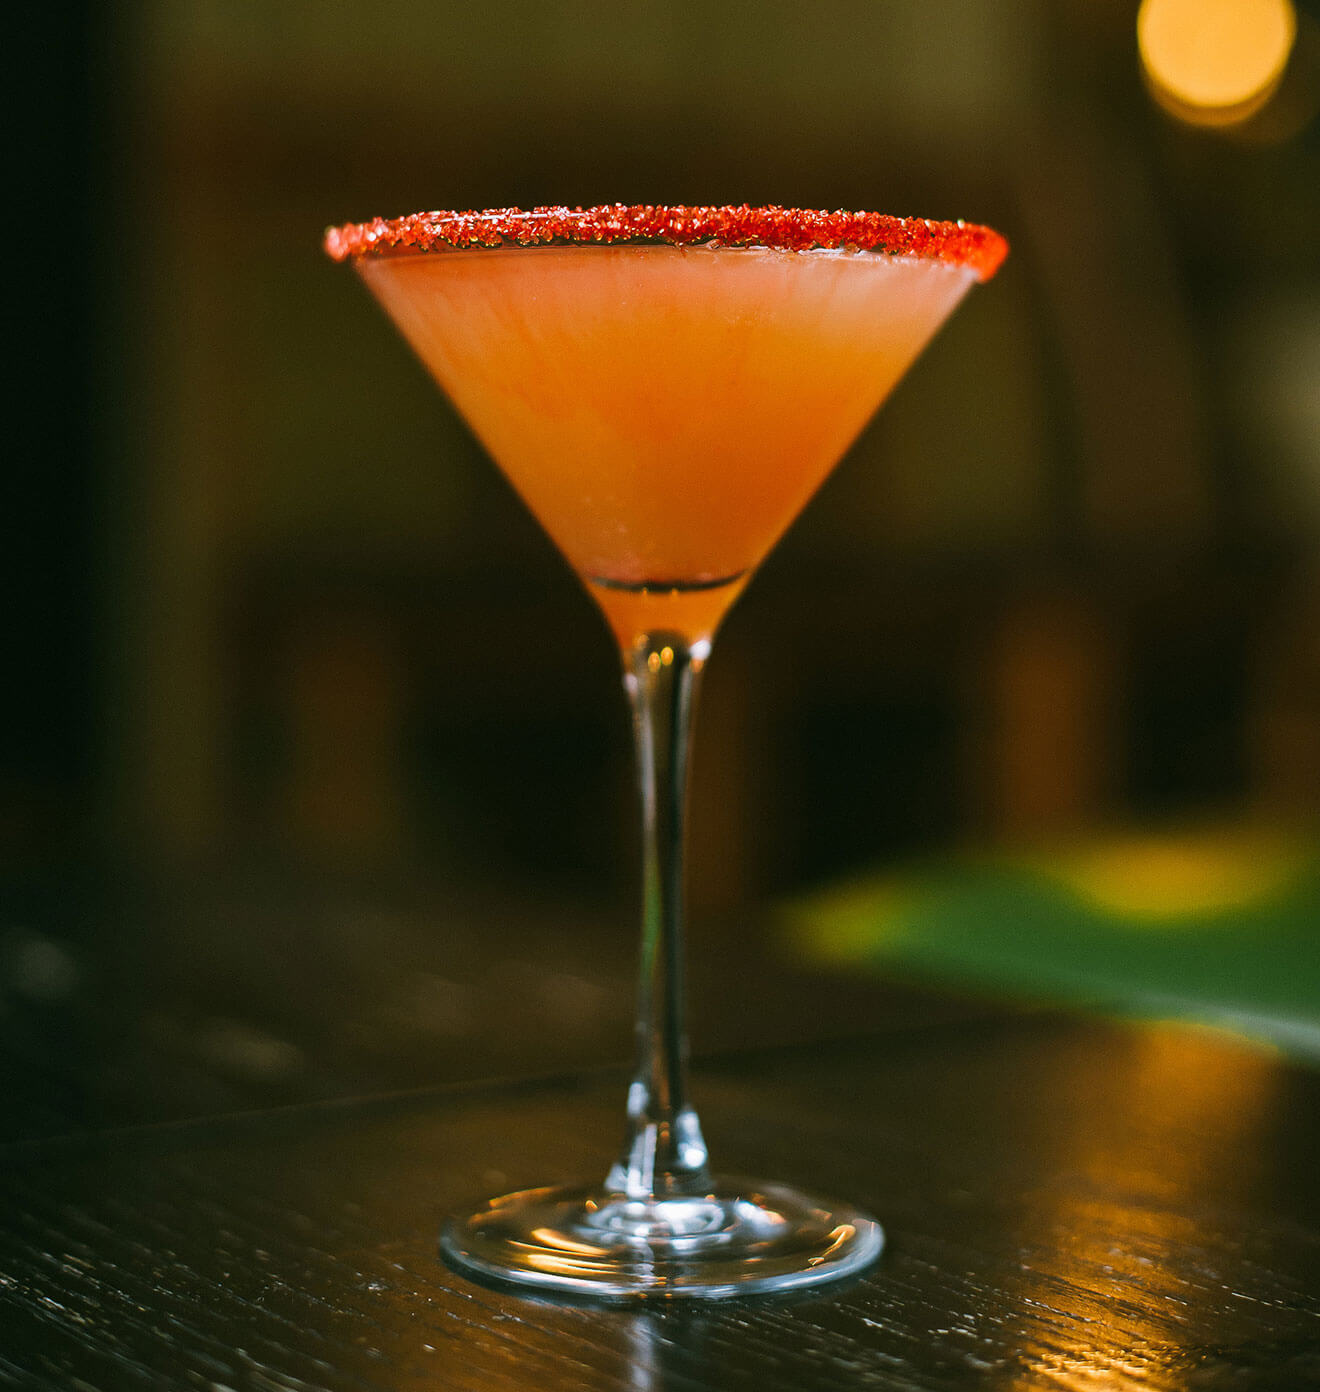 Italian Margarita cocktail with garnish and rim